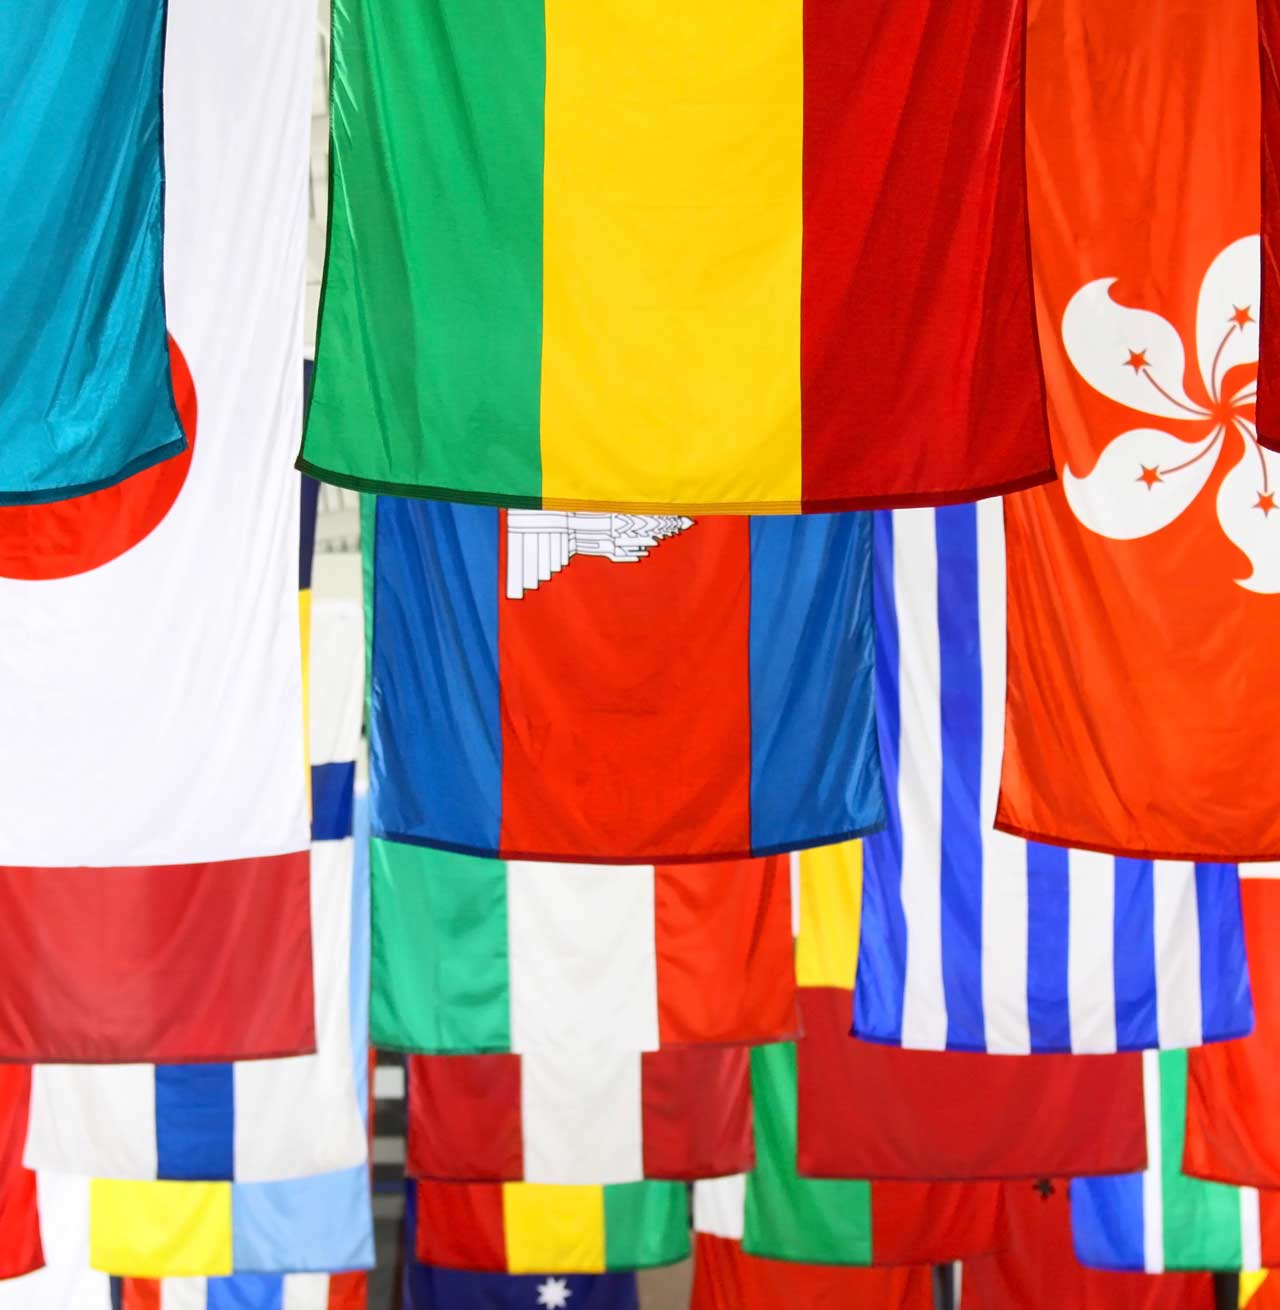 Flags representing different countries hanging from their short edge